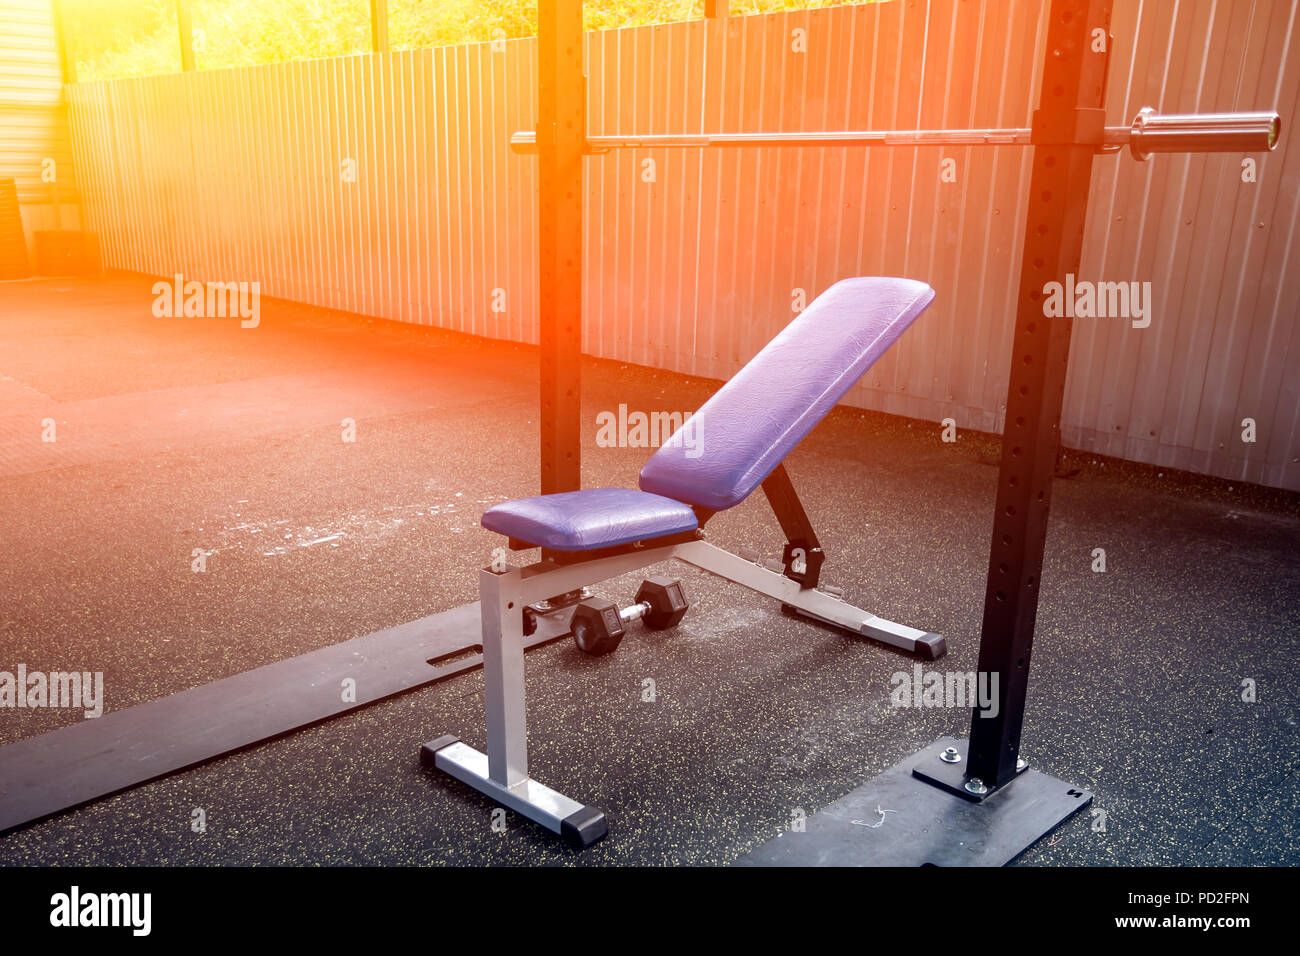 Pleasant A Close Up Of A Metal Simulator In The Form Of A Bench With Gmtry Best Dining Table And Chair Ideas Images Gmtryco